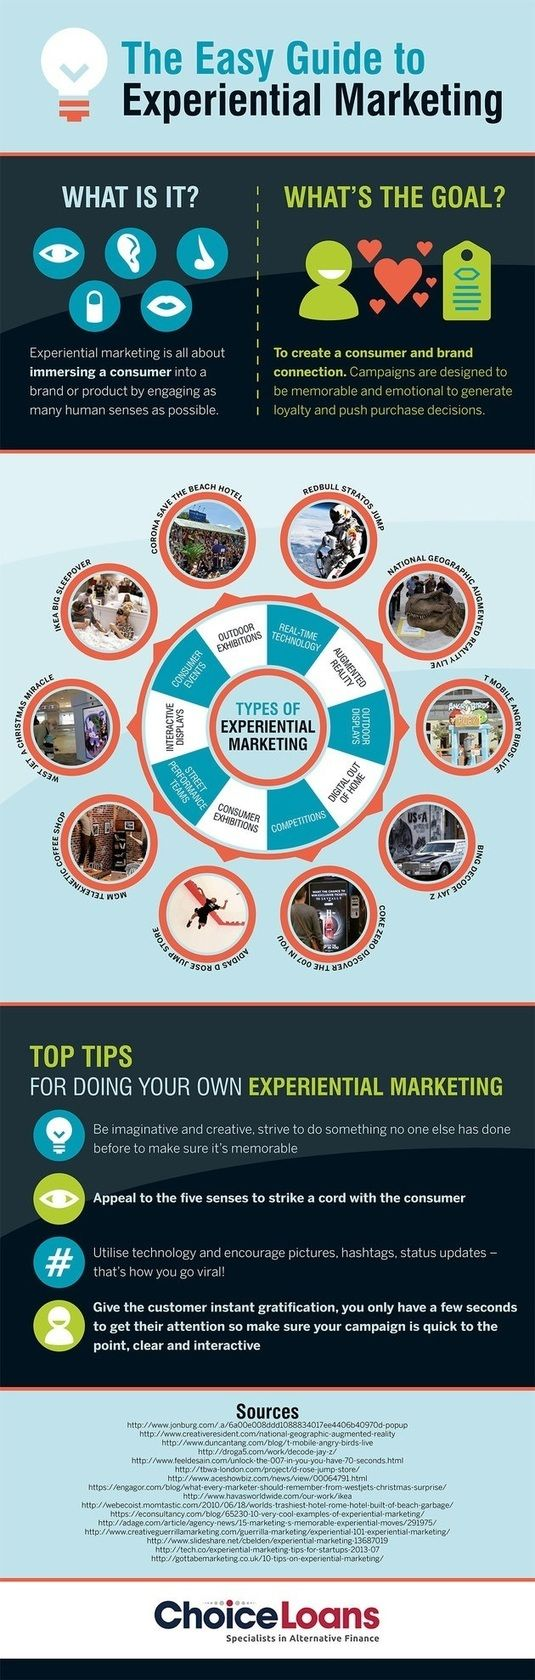 It's Time to Experiment with Experiential Marketing - ClickZ